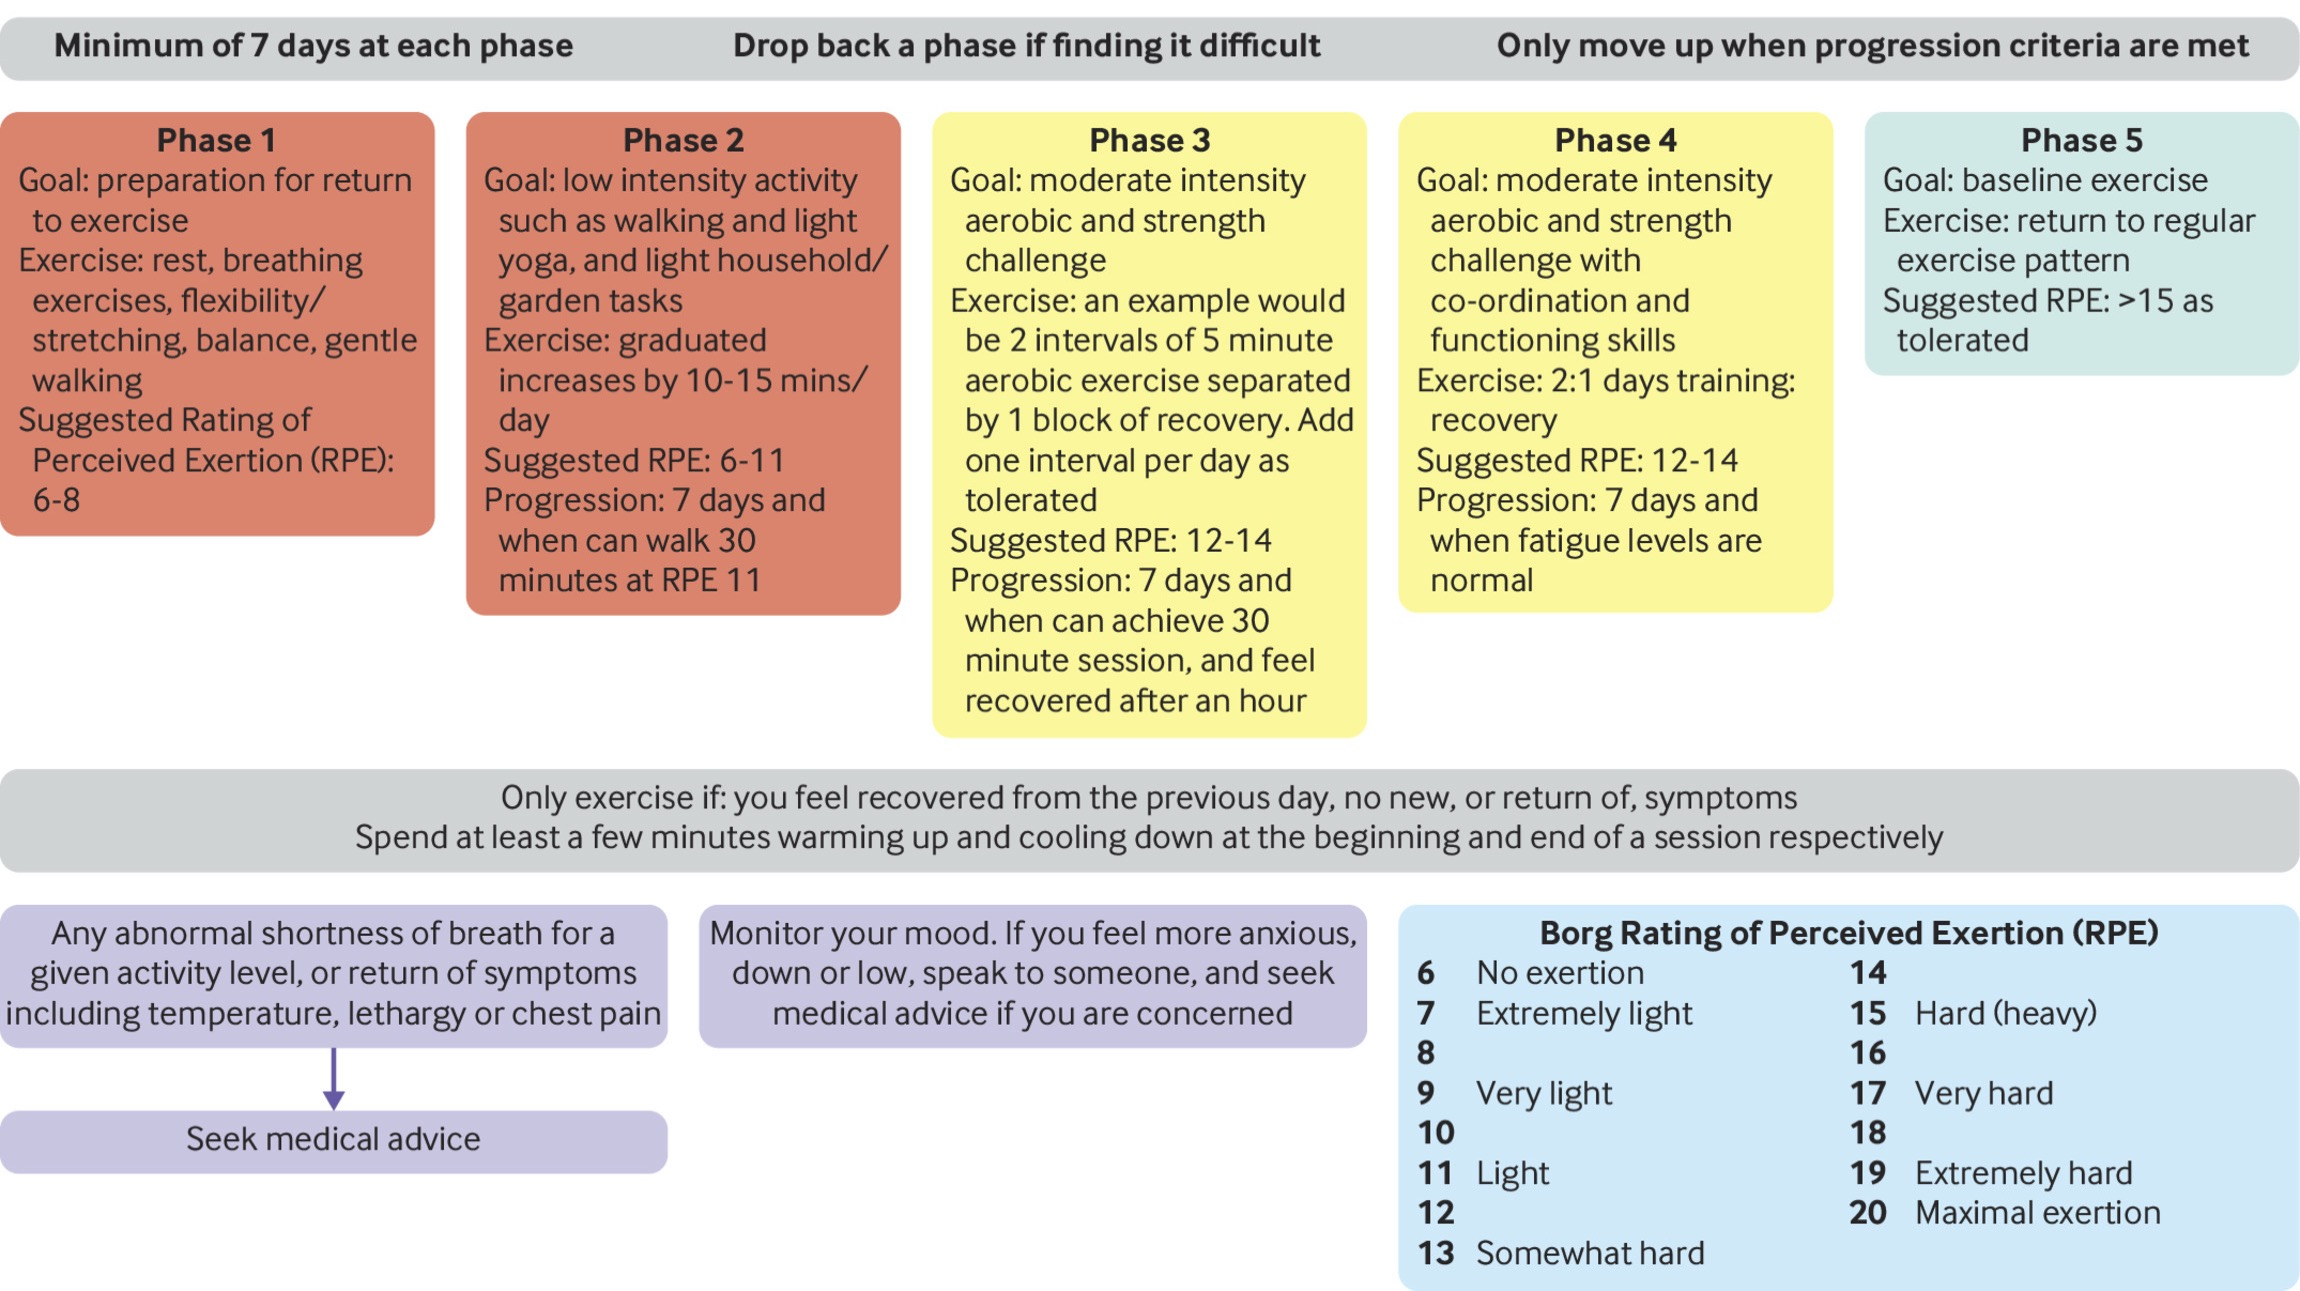 Figure 1. Suggested return to physical activity after COVID-19. Adapted from Salman et al., BMJ, 2021.